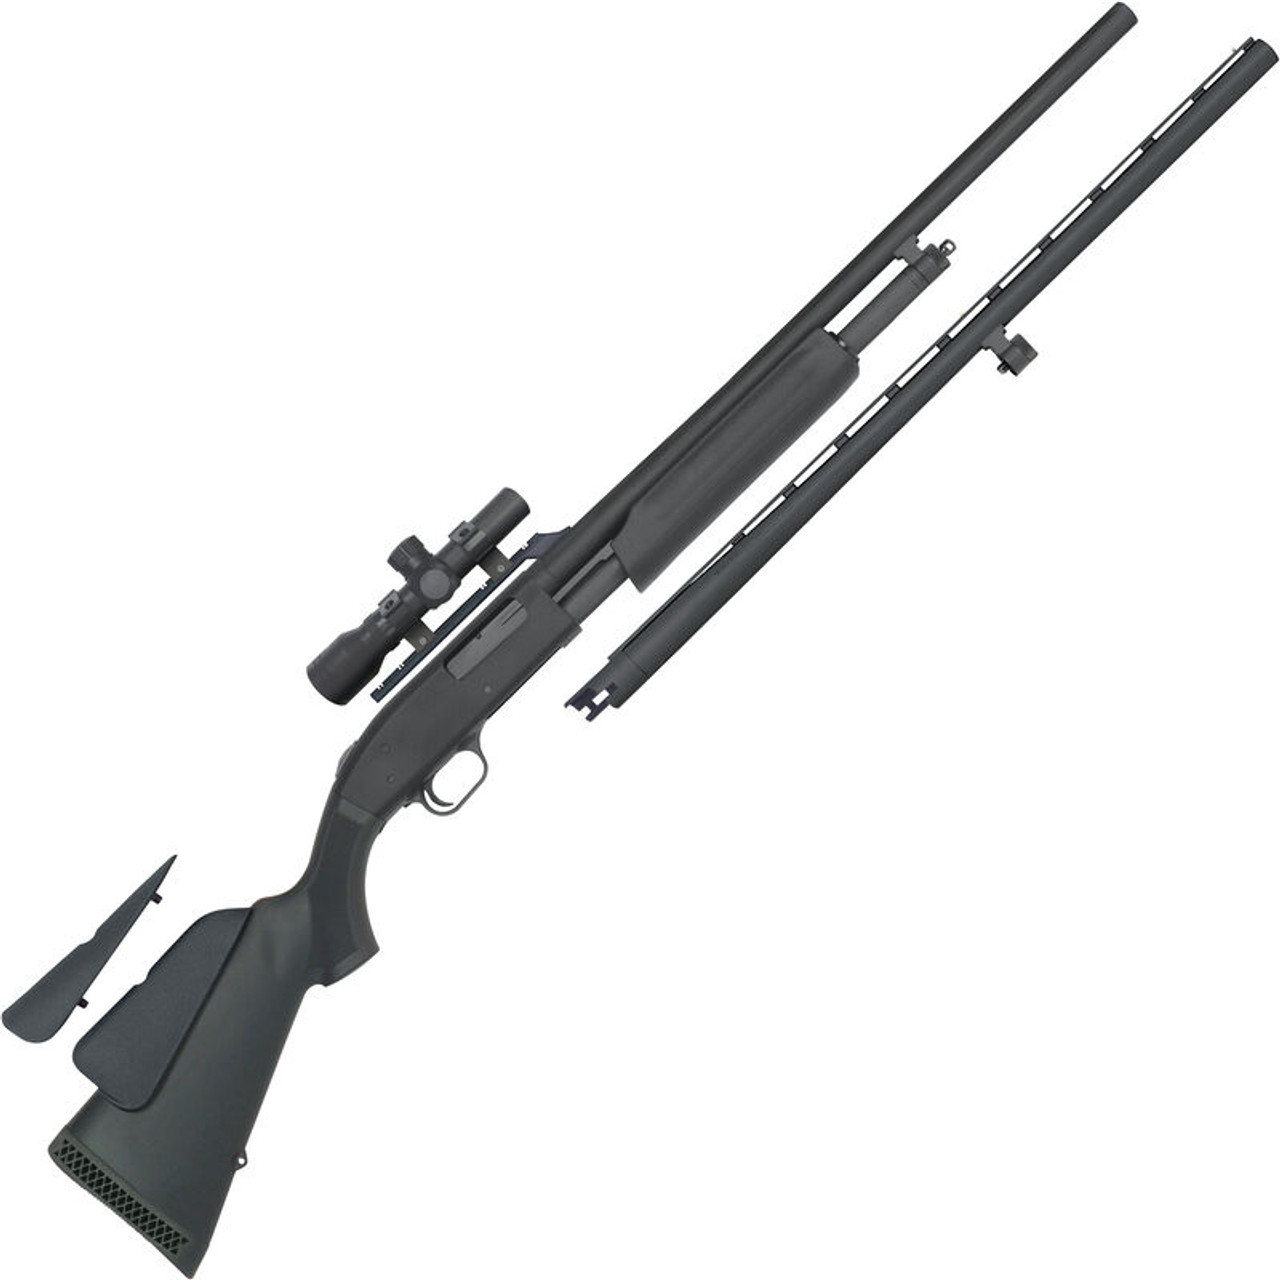 """Mossberg 500 Field and Slug Combo 20 Gauge Pump Action Shotgun 26"""" and 24"""" Barrels 3"""" Chamber 5 Rounds with 2.5x20 Scope Synthetic Stock Matte Blued"""